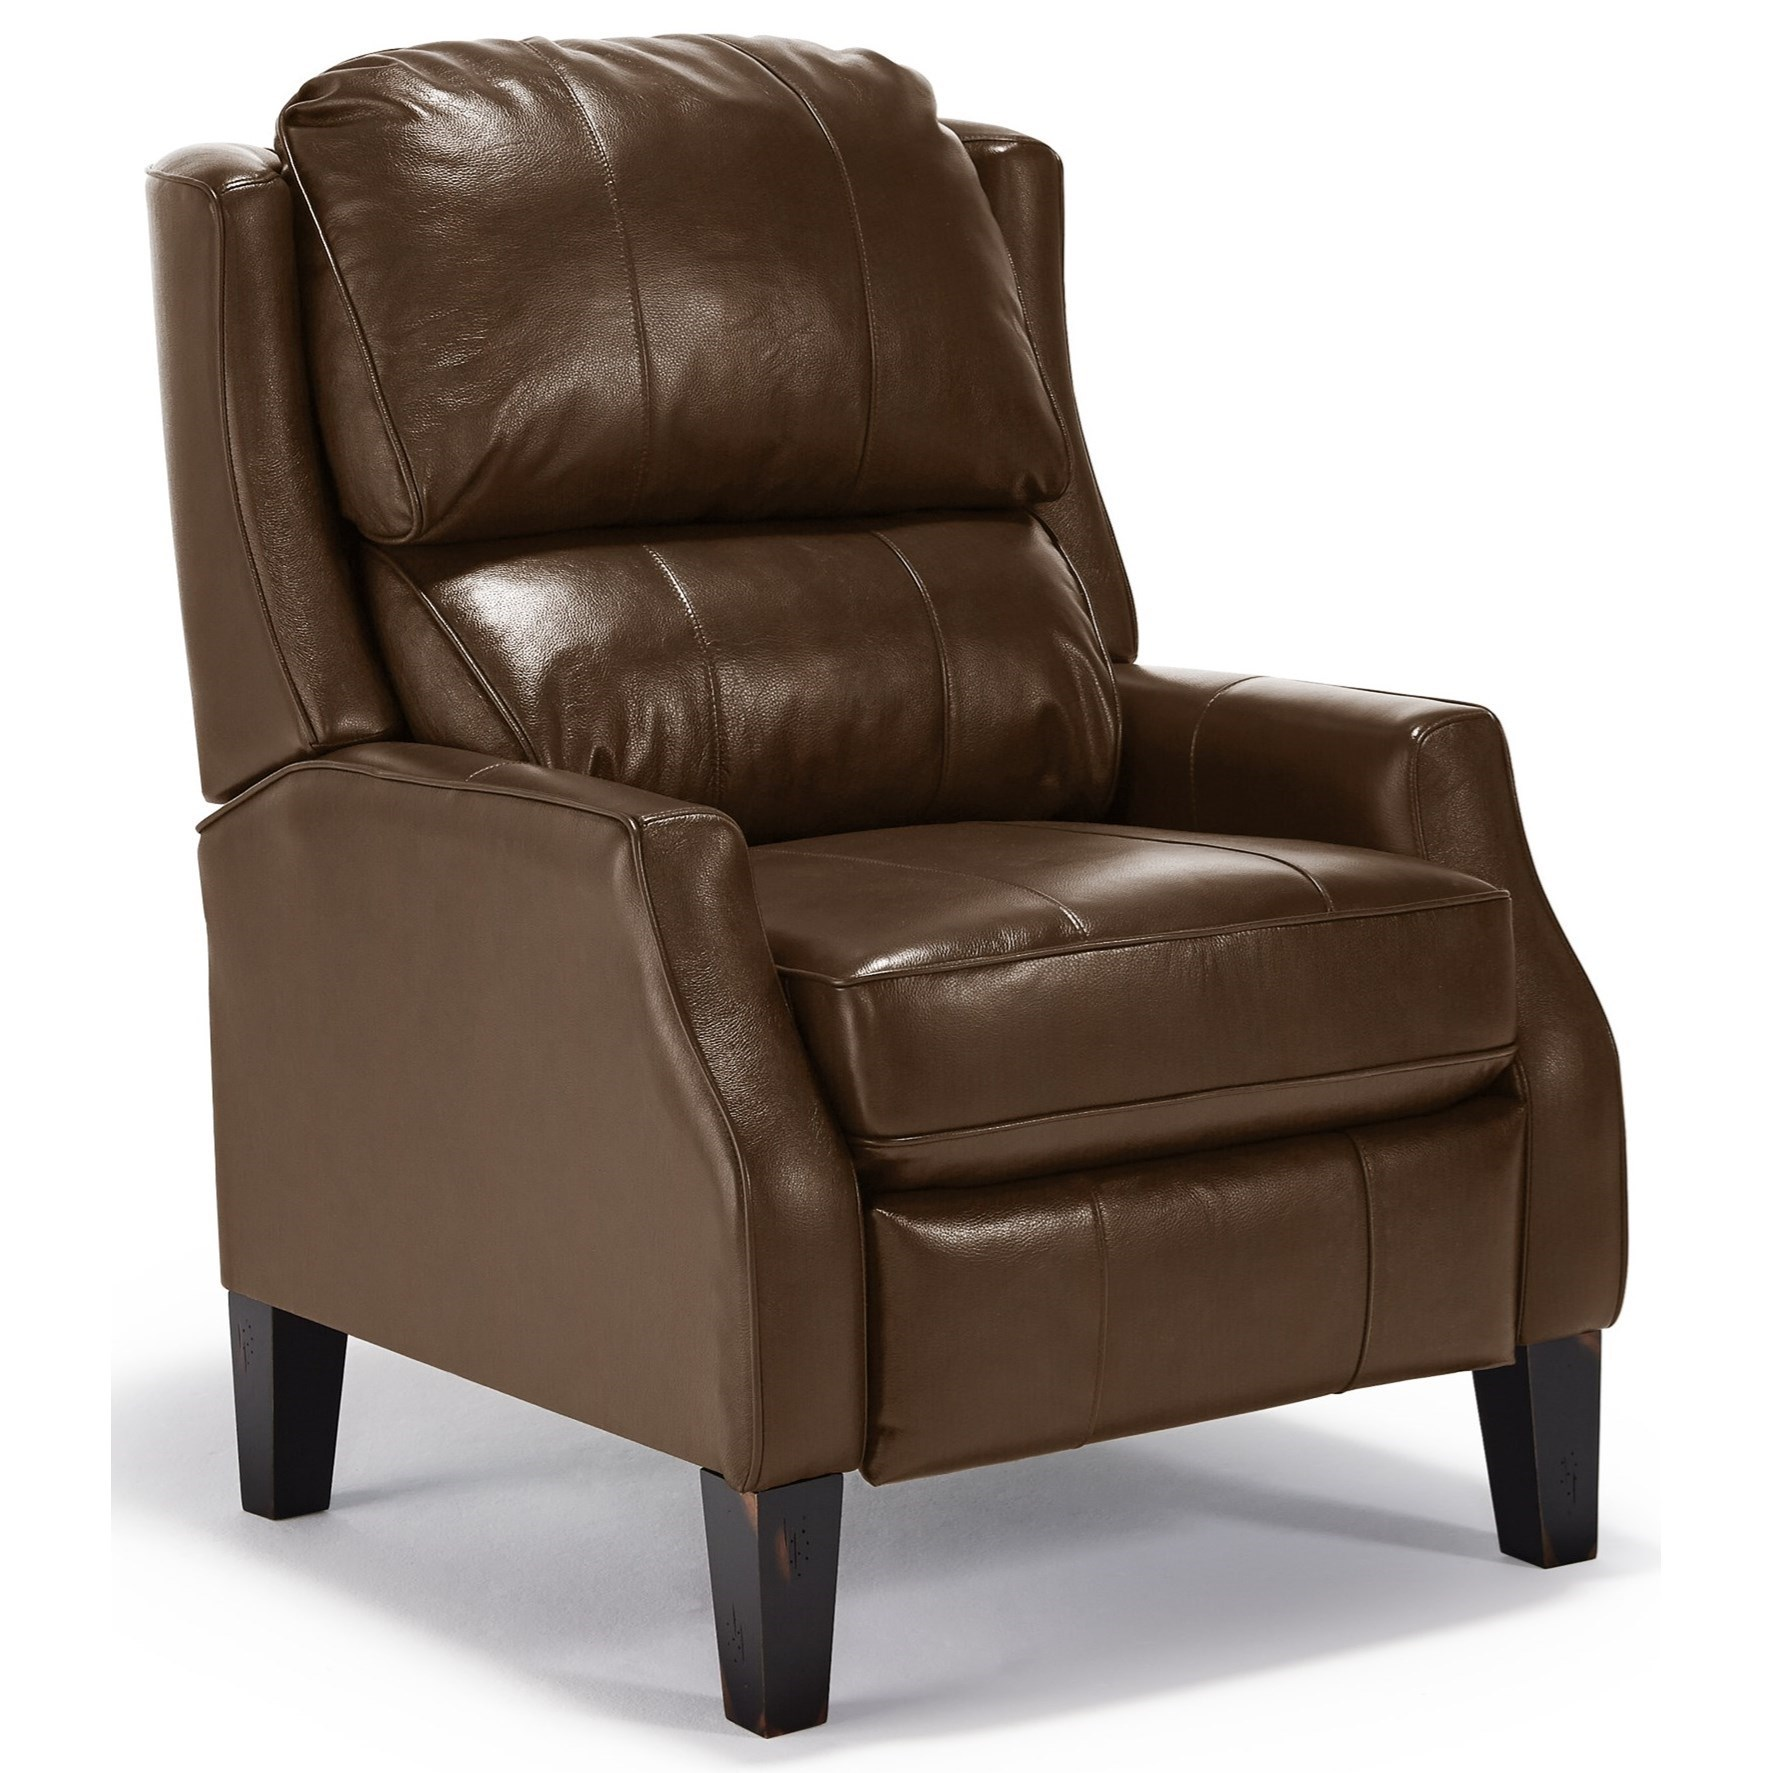 Recliners - Pushback Pauley Pushback Recliner by Best Home Furnishings at Best Home Furnishings